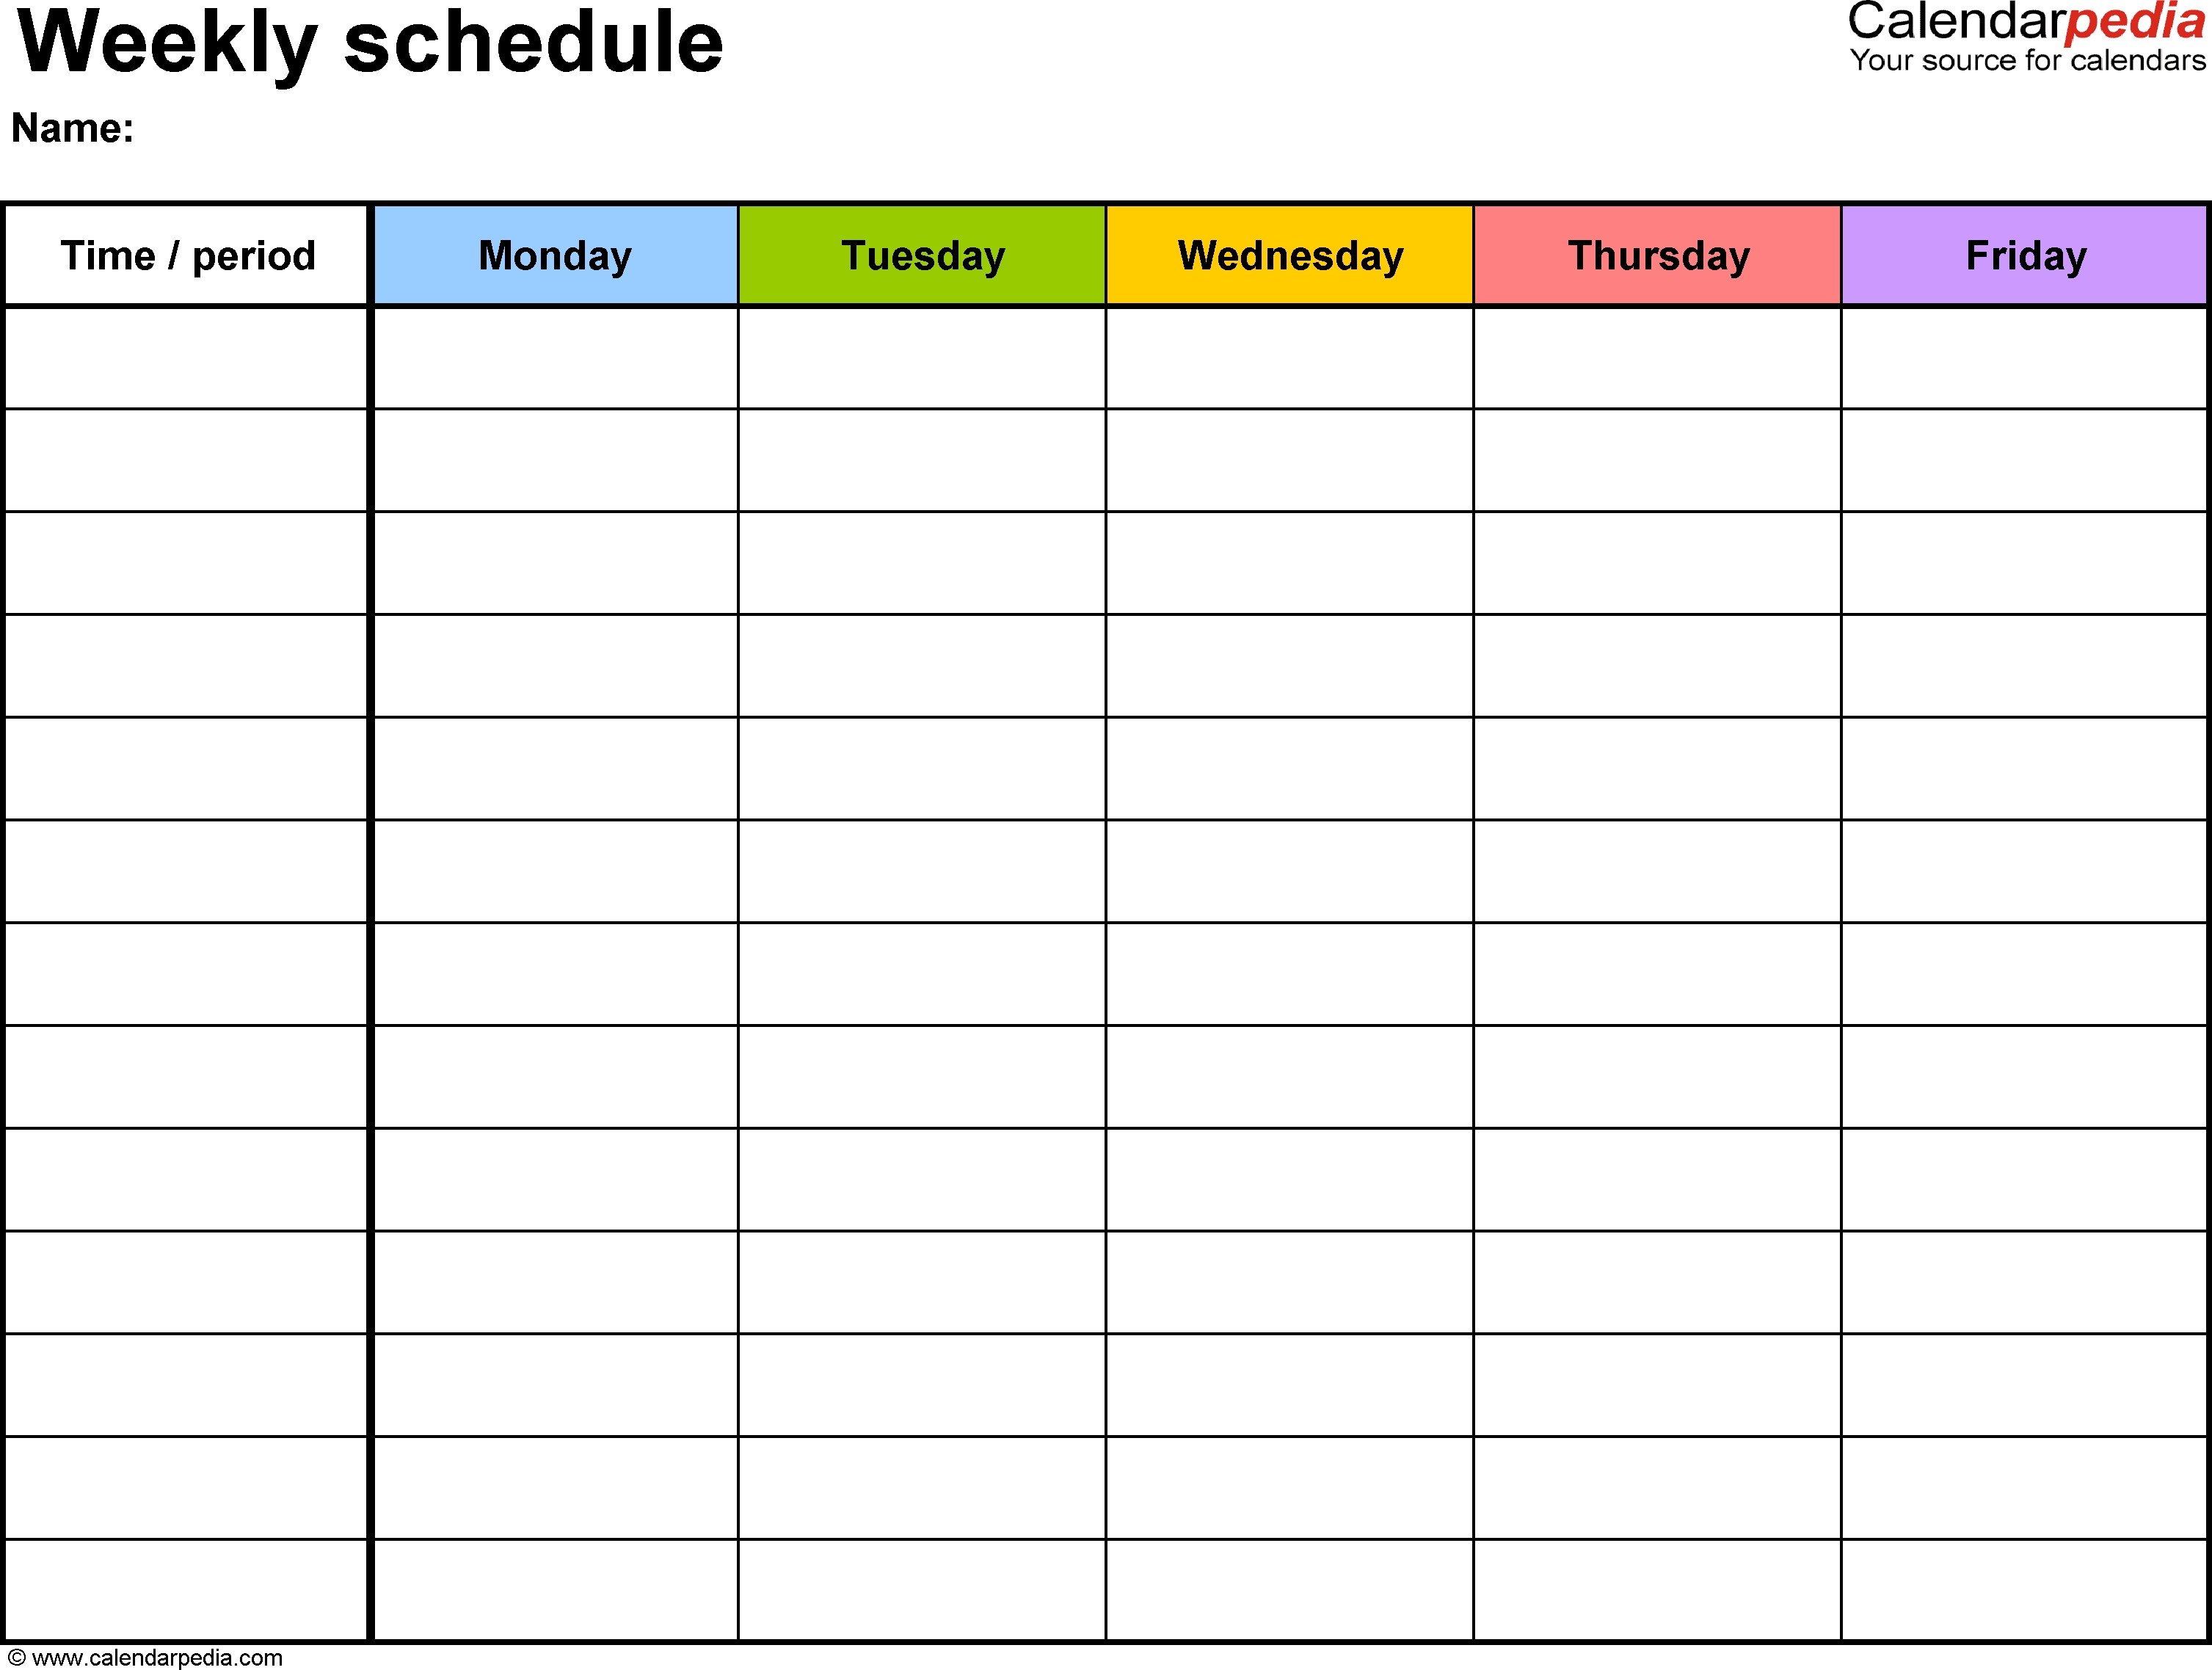 Free Weekly Schedule Templates For Word - 18 Templates with regard to Printable Weekly Schedule Monday Thru Friday